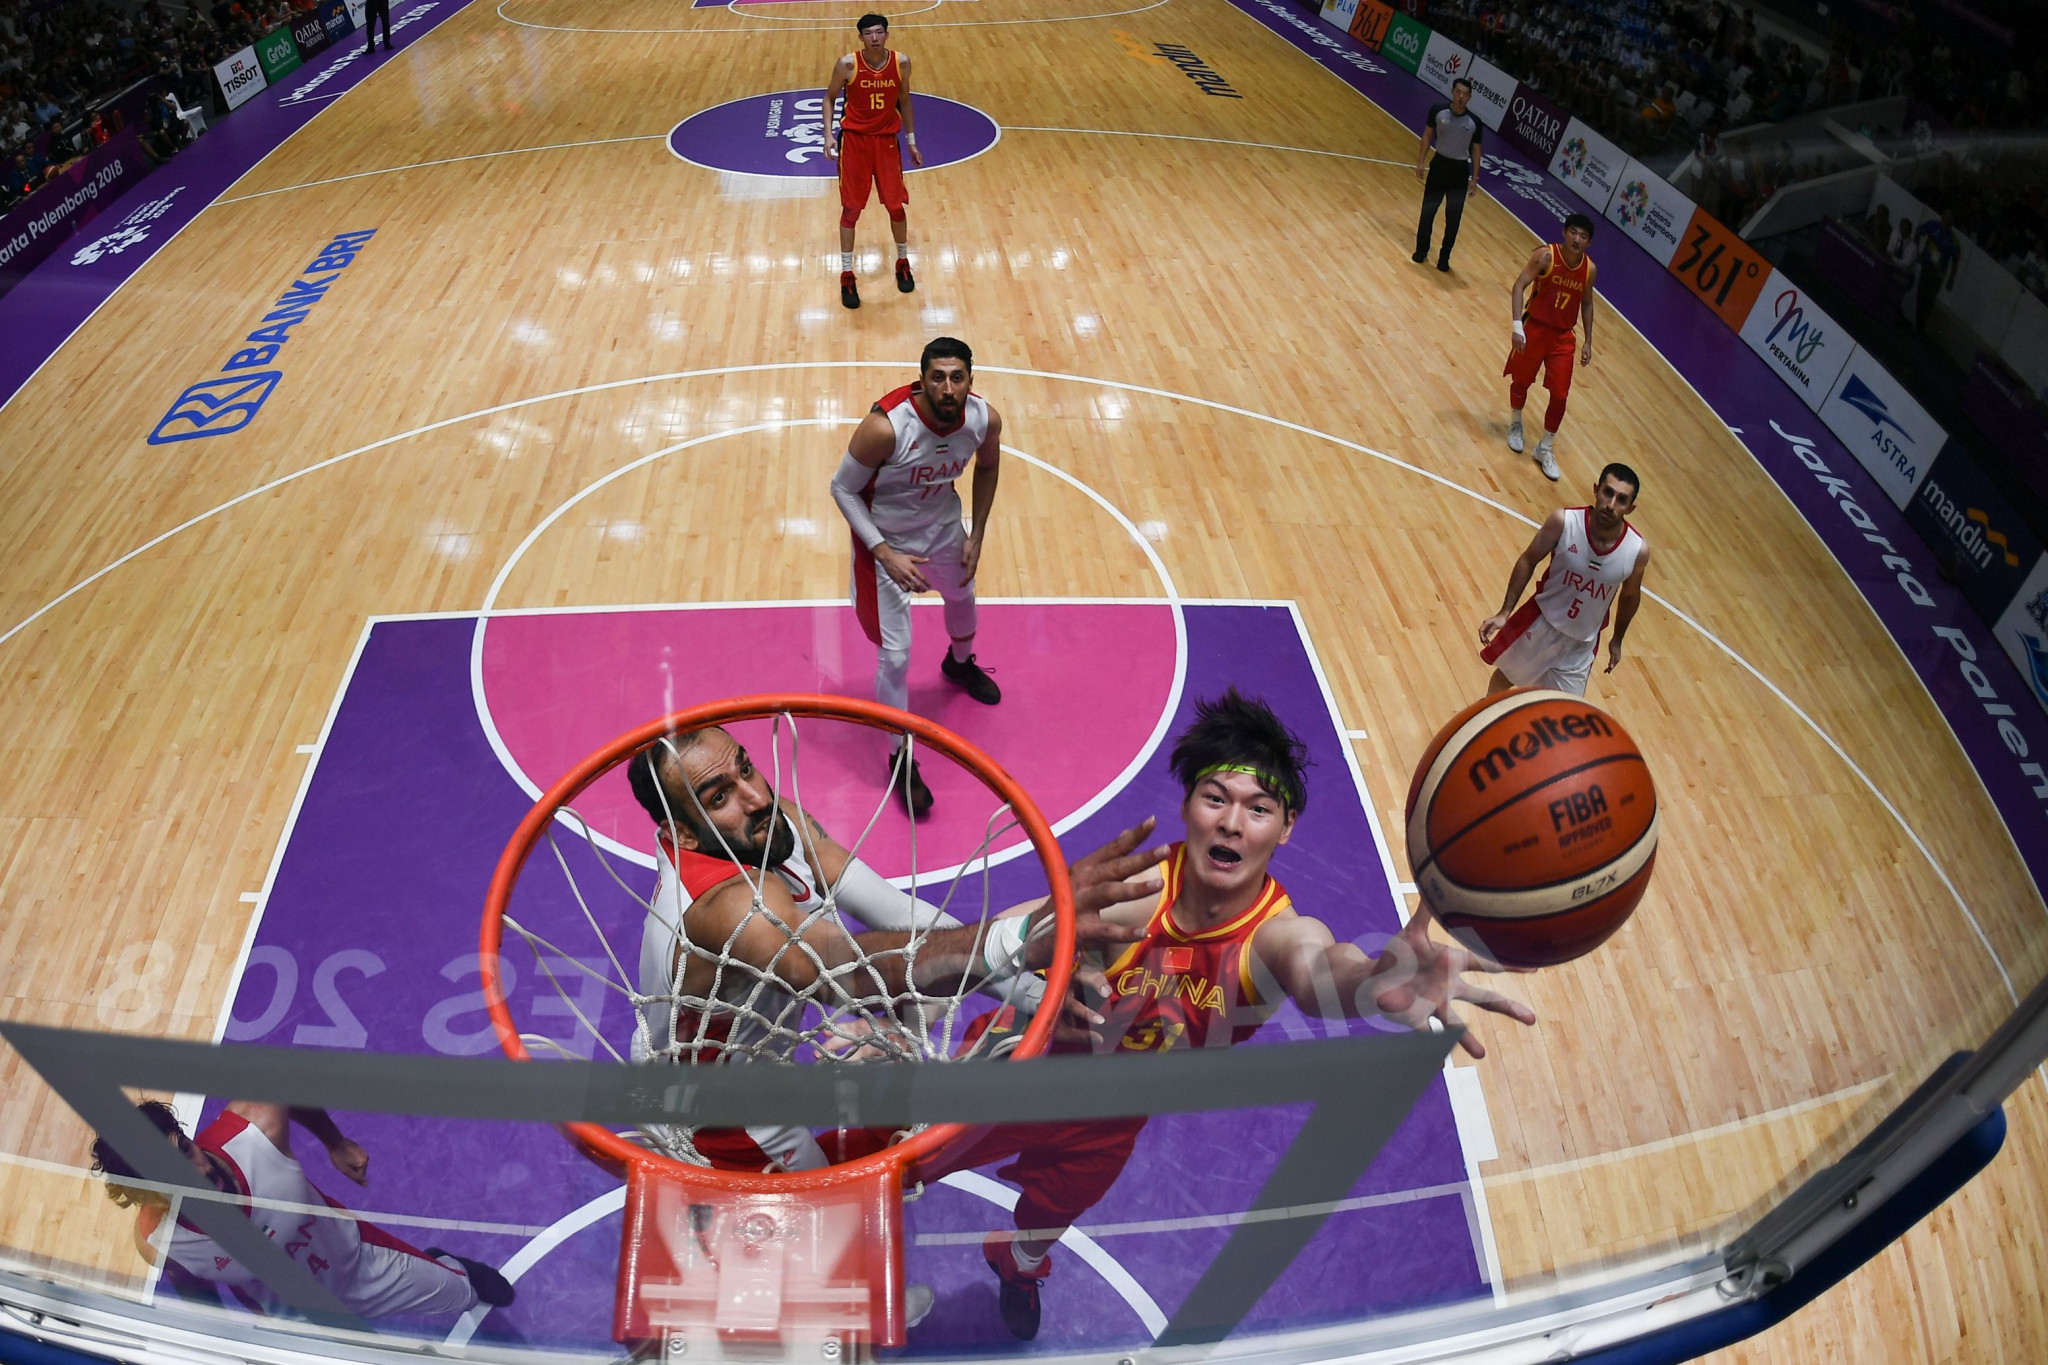 Basketball was among the sports played when Jakarta hosted the 2018 Asian Games ©Getty Images